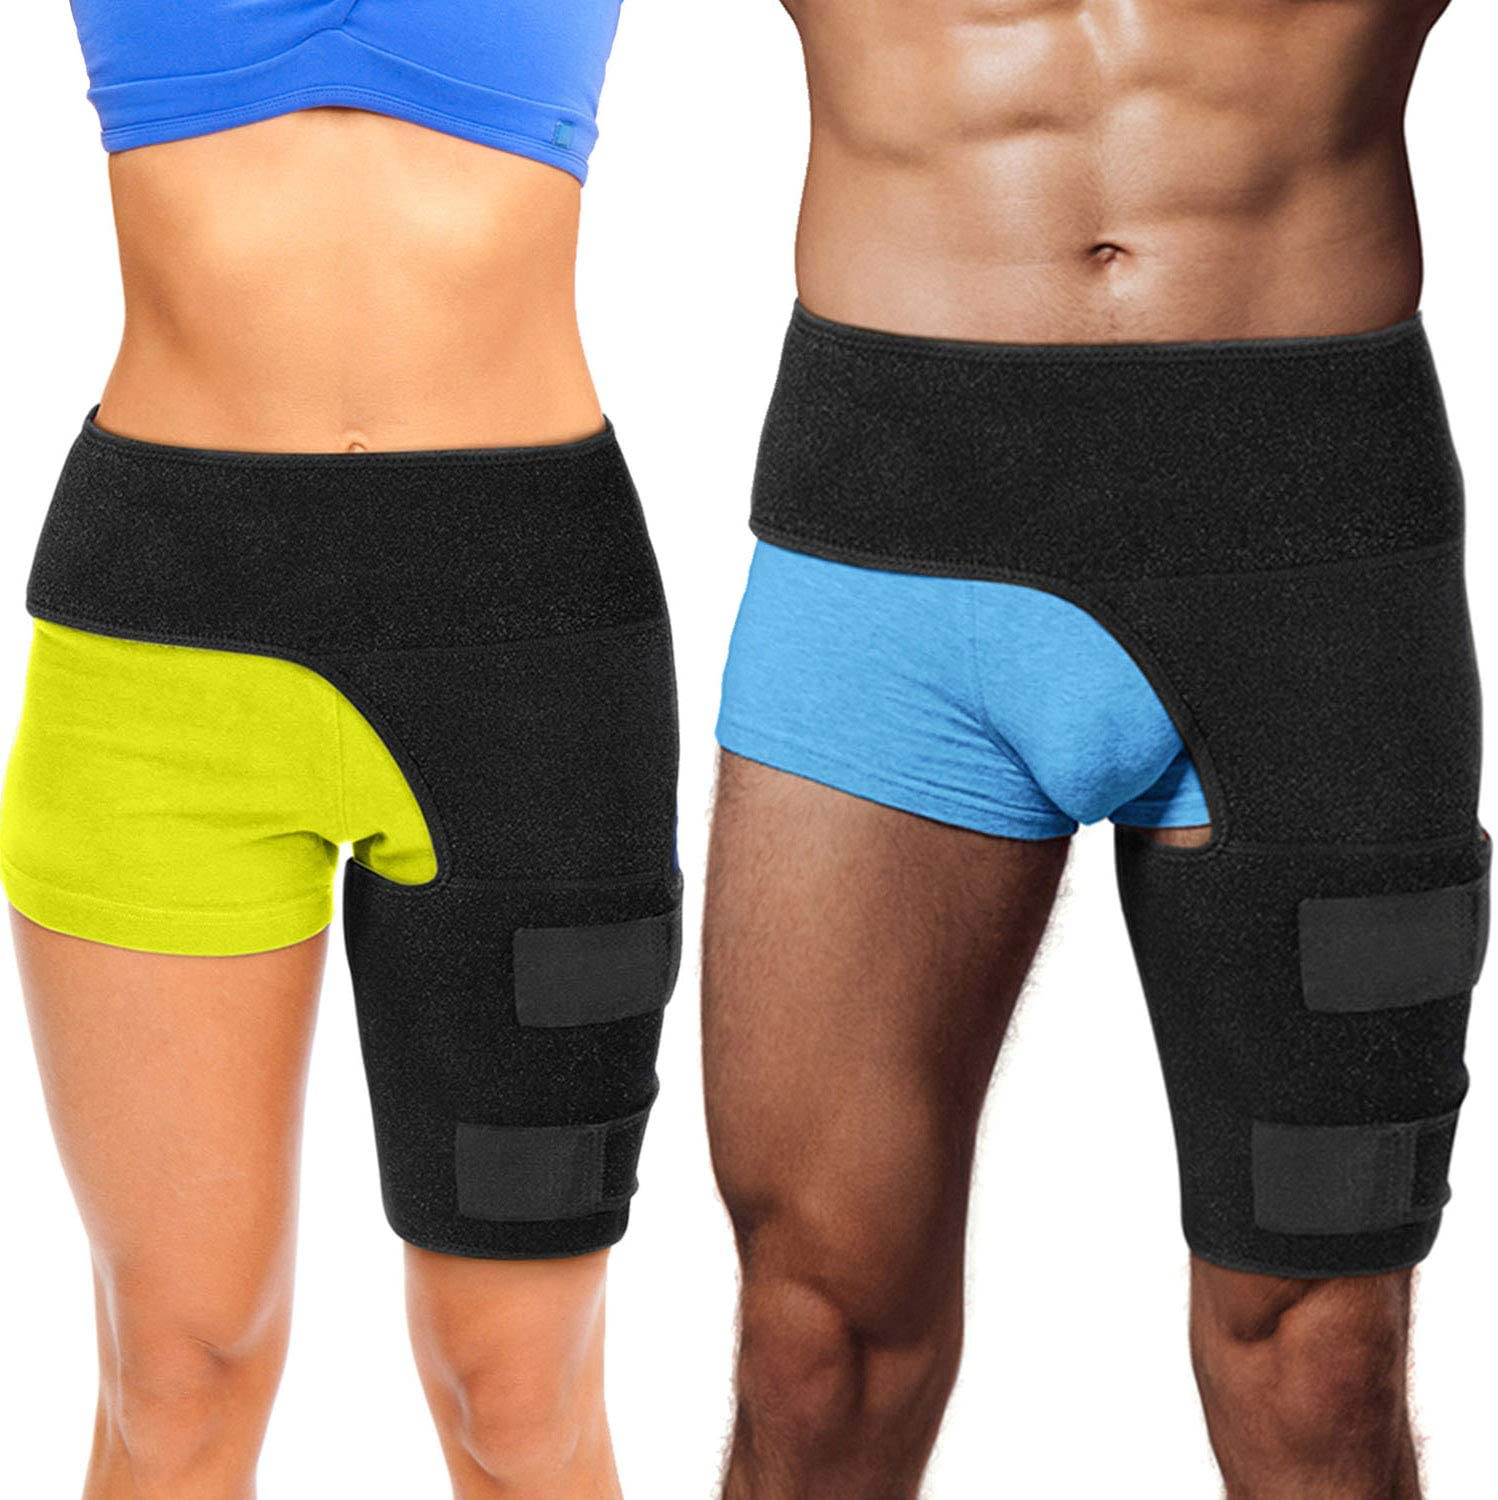 ARMSTRONG AMERIKA Hip Brace Thigh Compression Sleeve